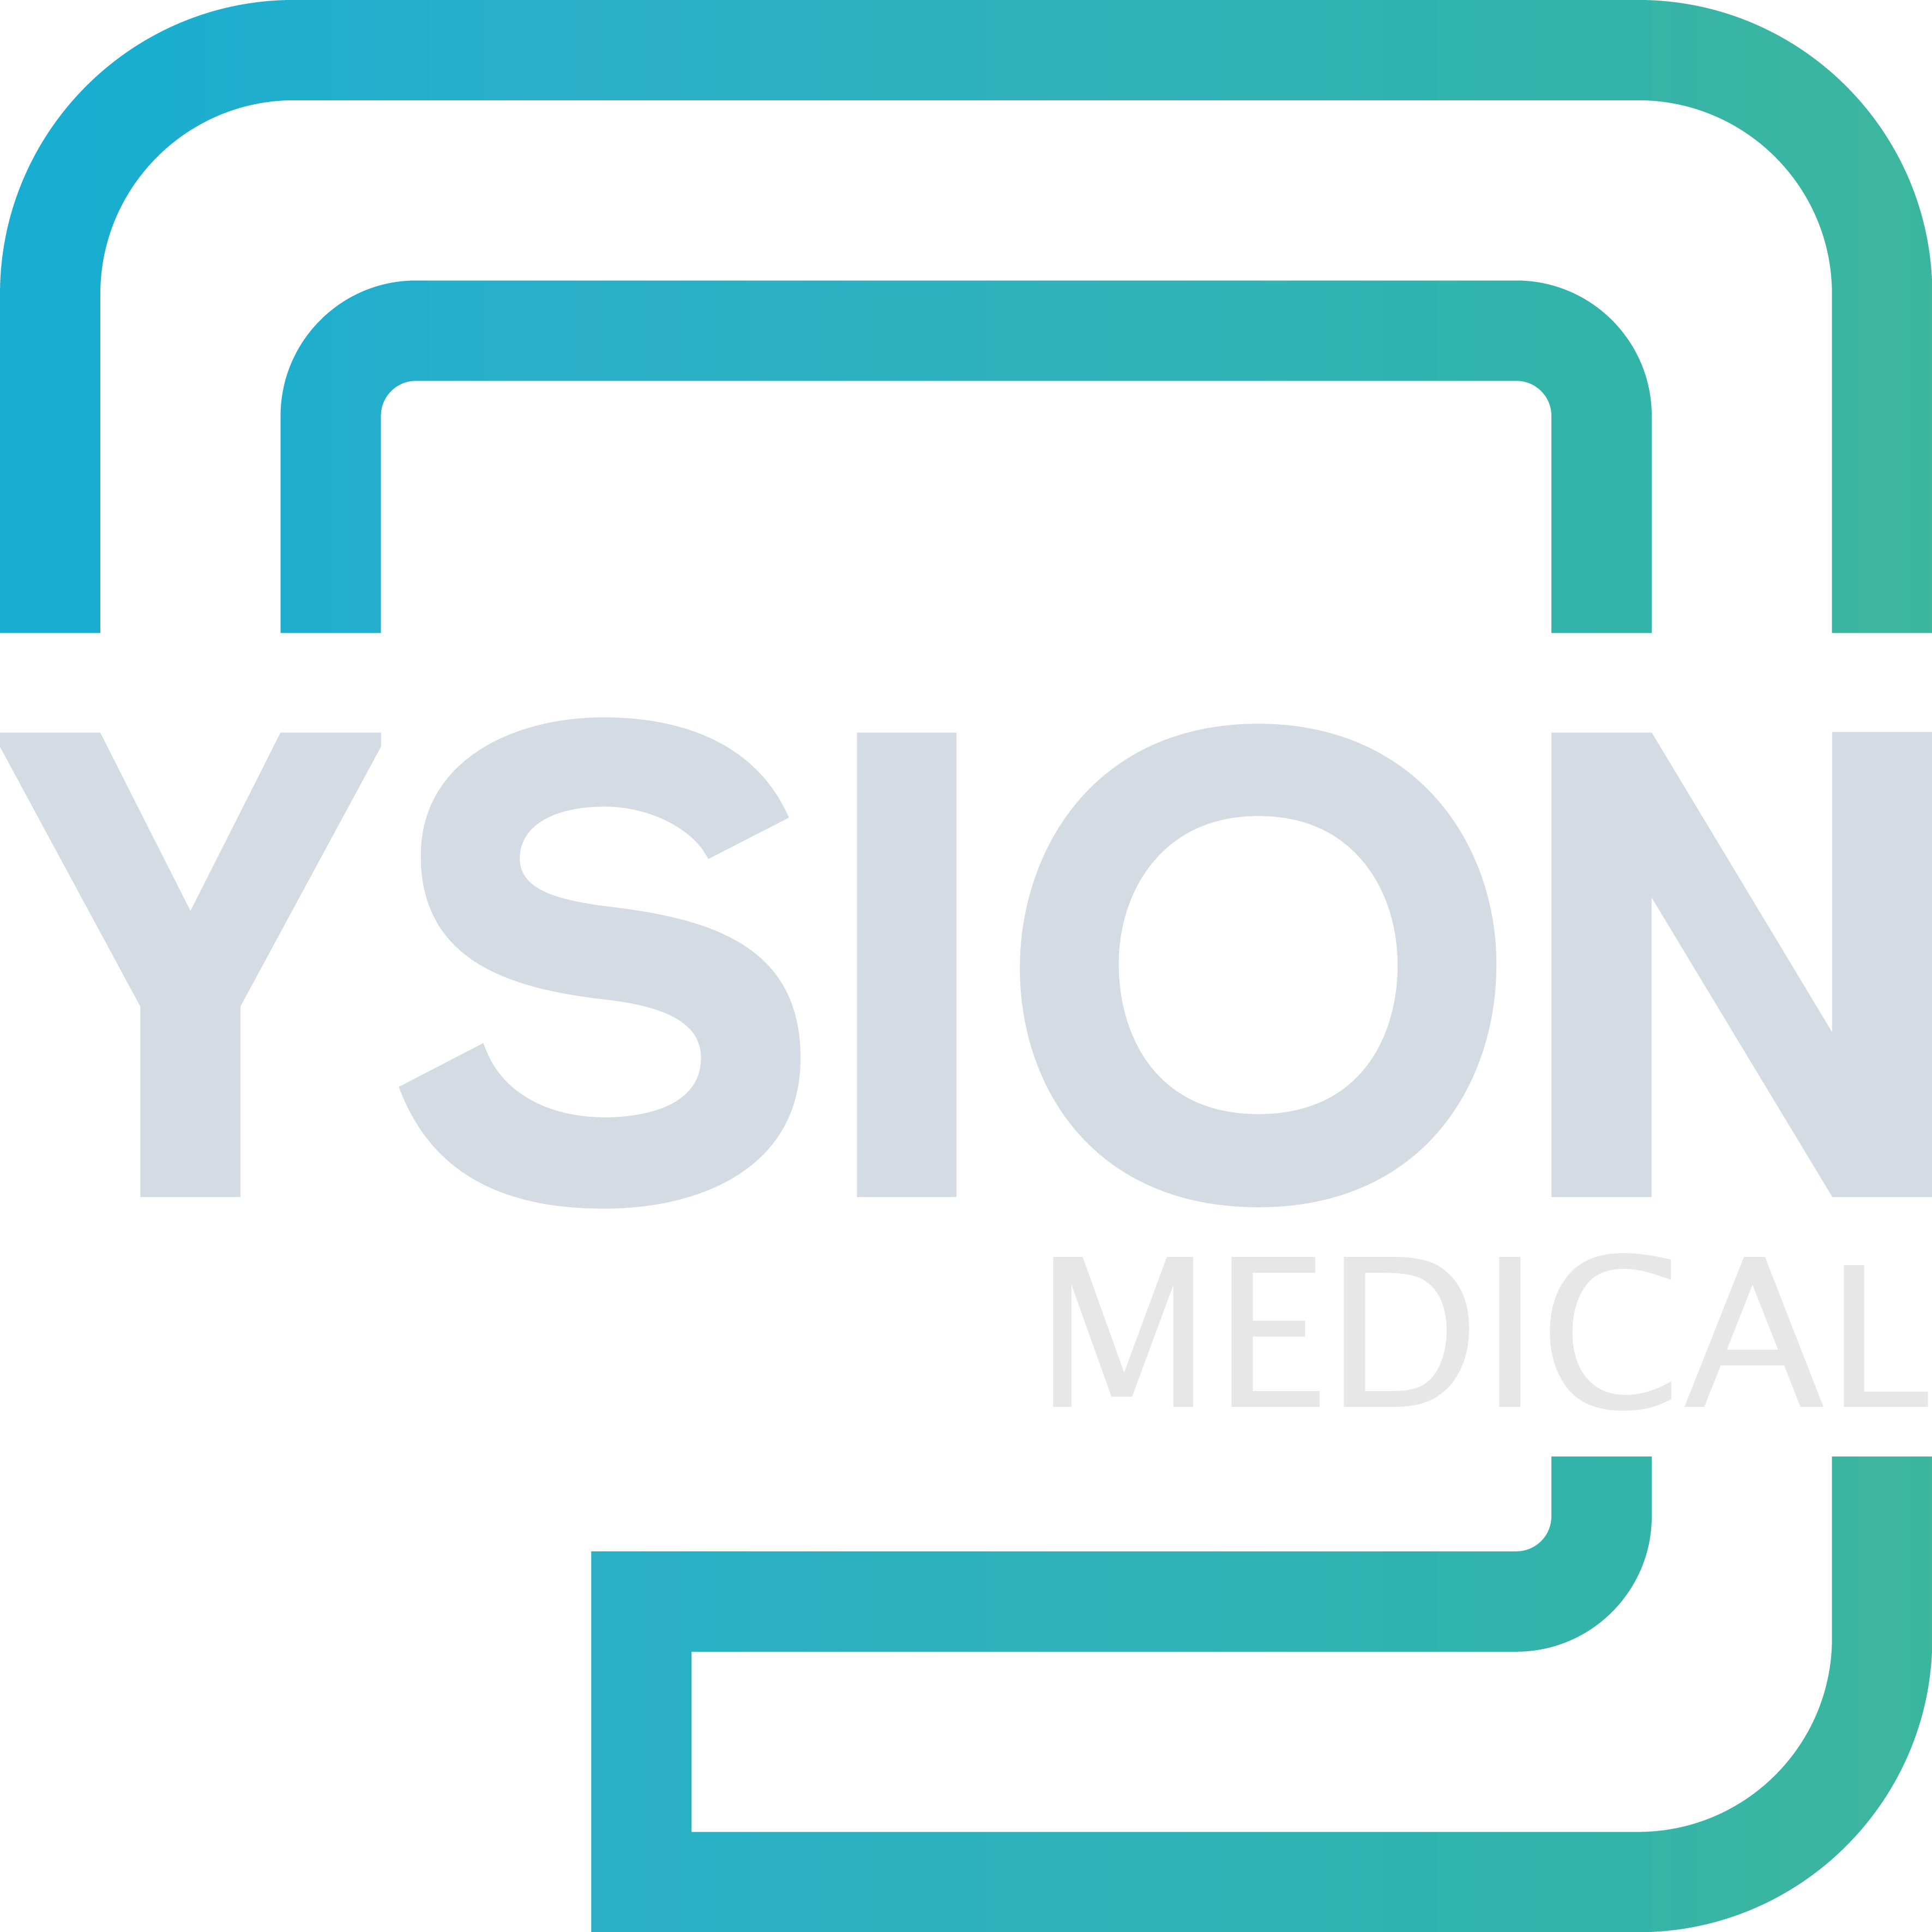 YsionMedical